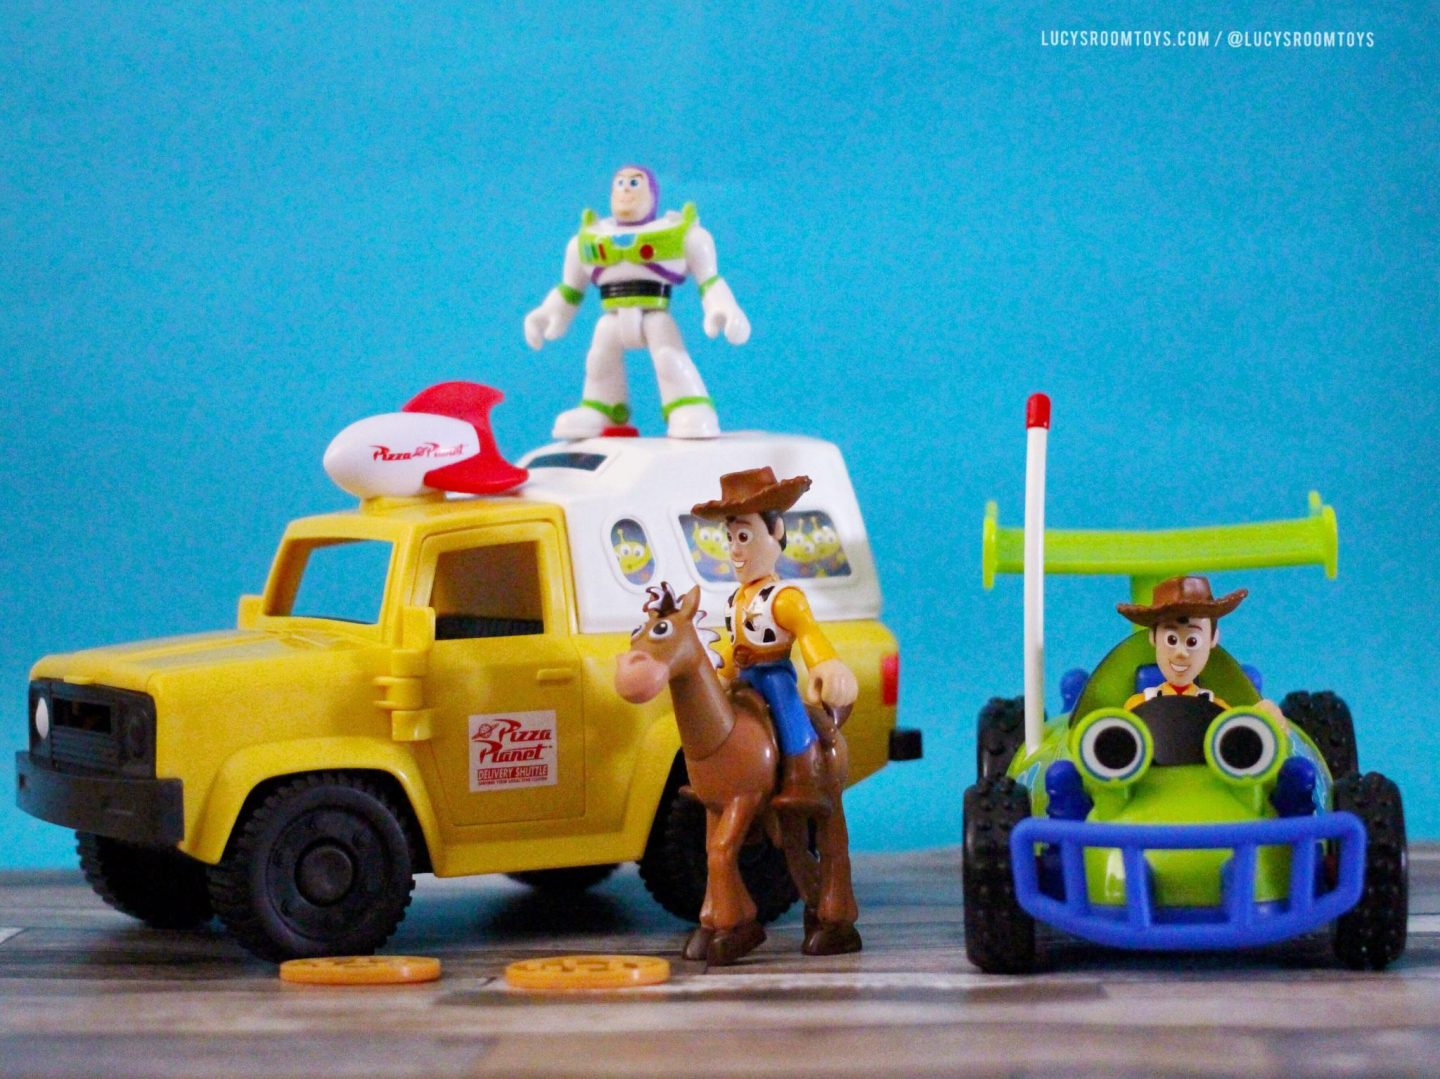 ImagiNext Toy Story Toys – Part 1